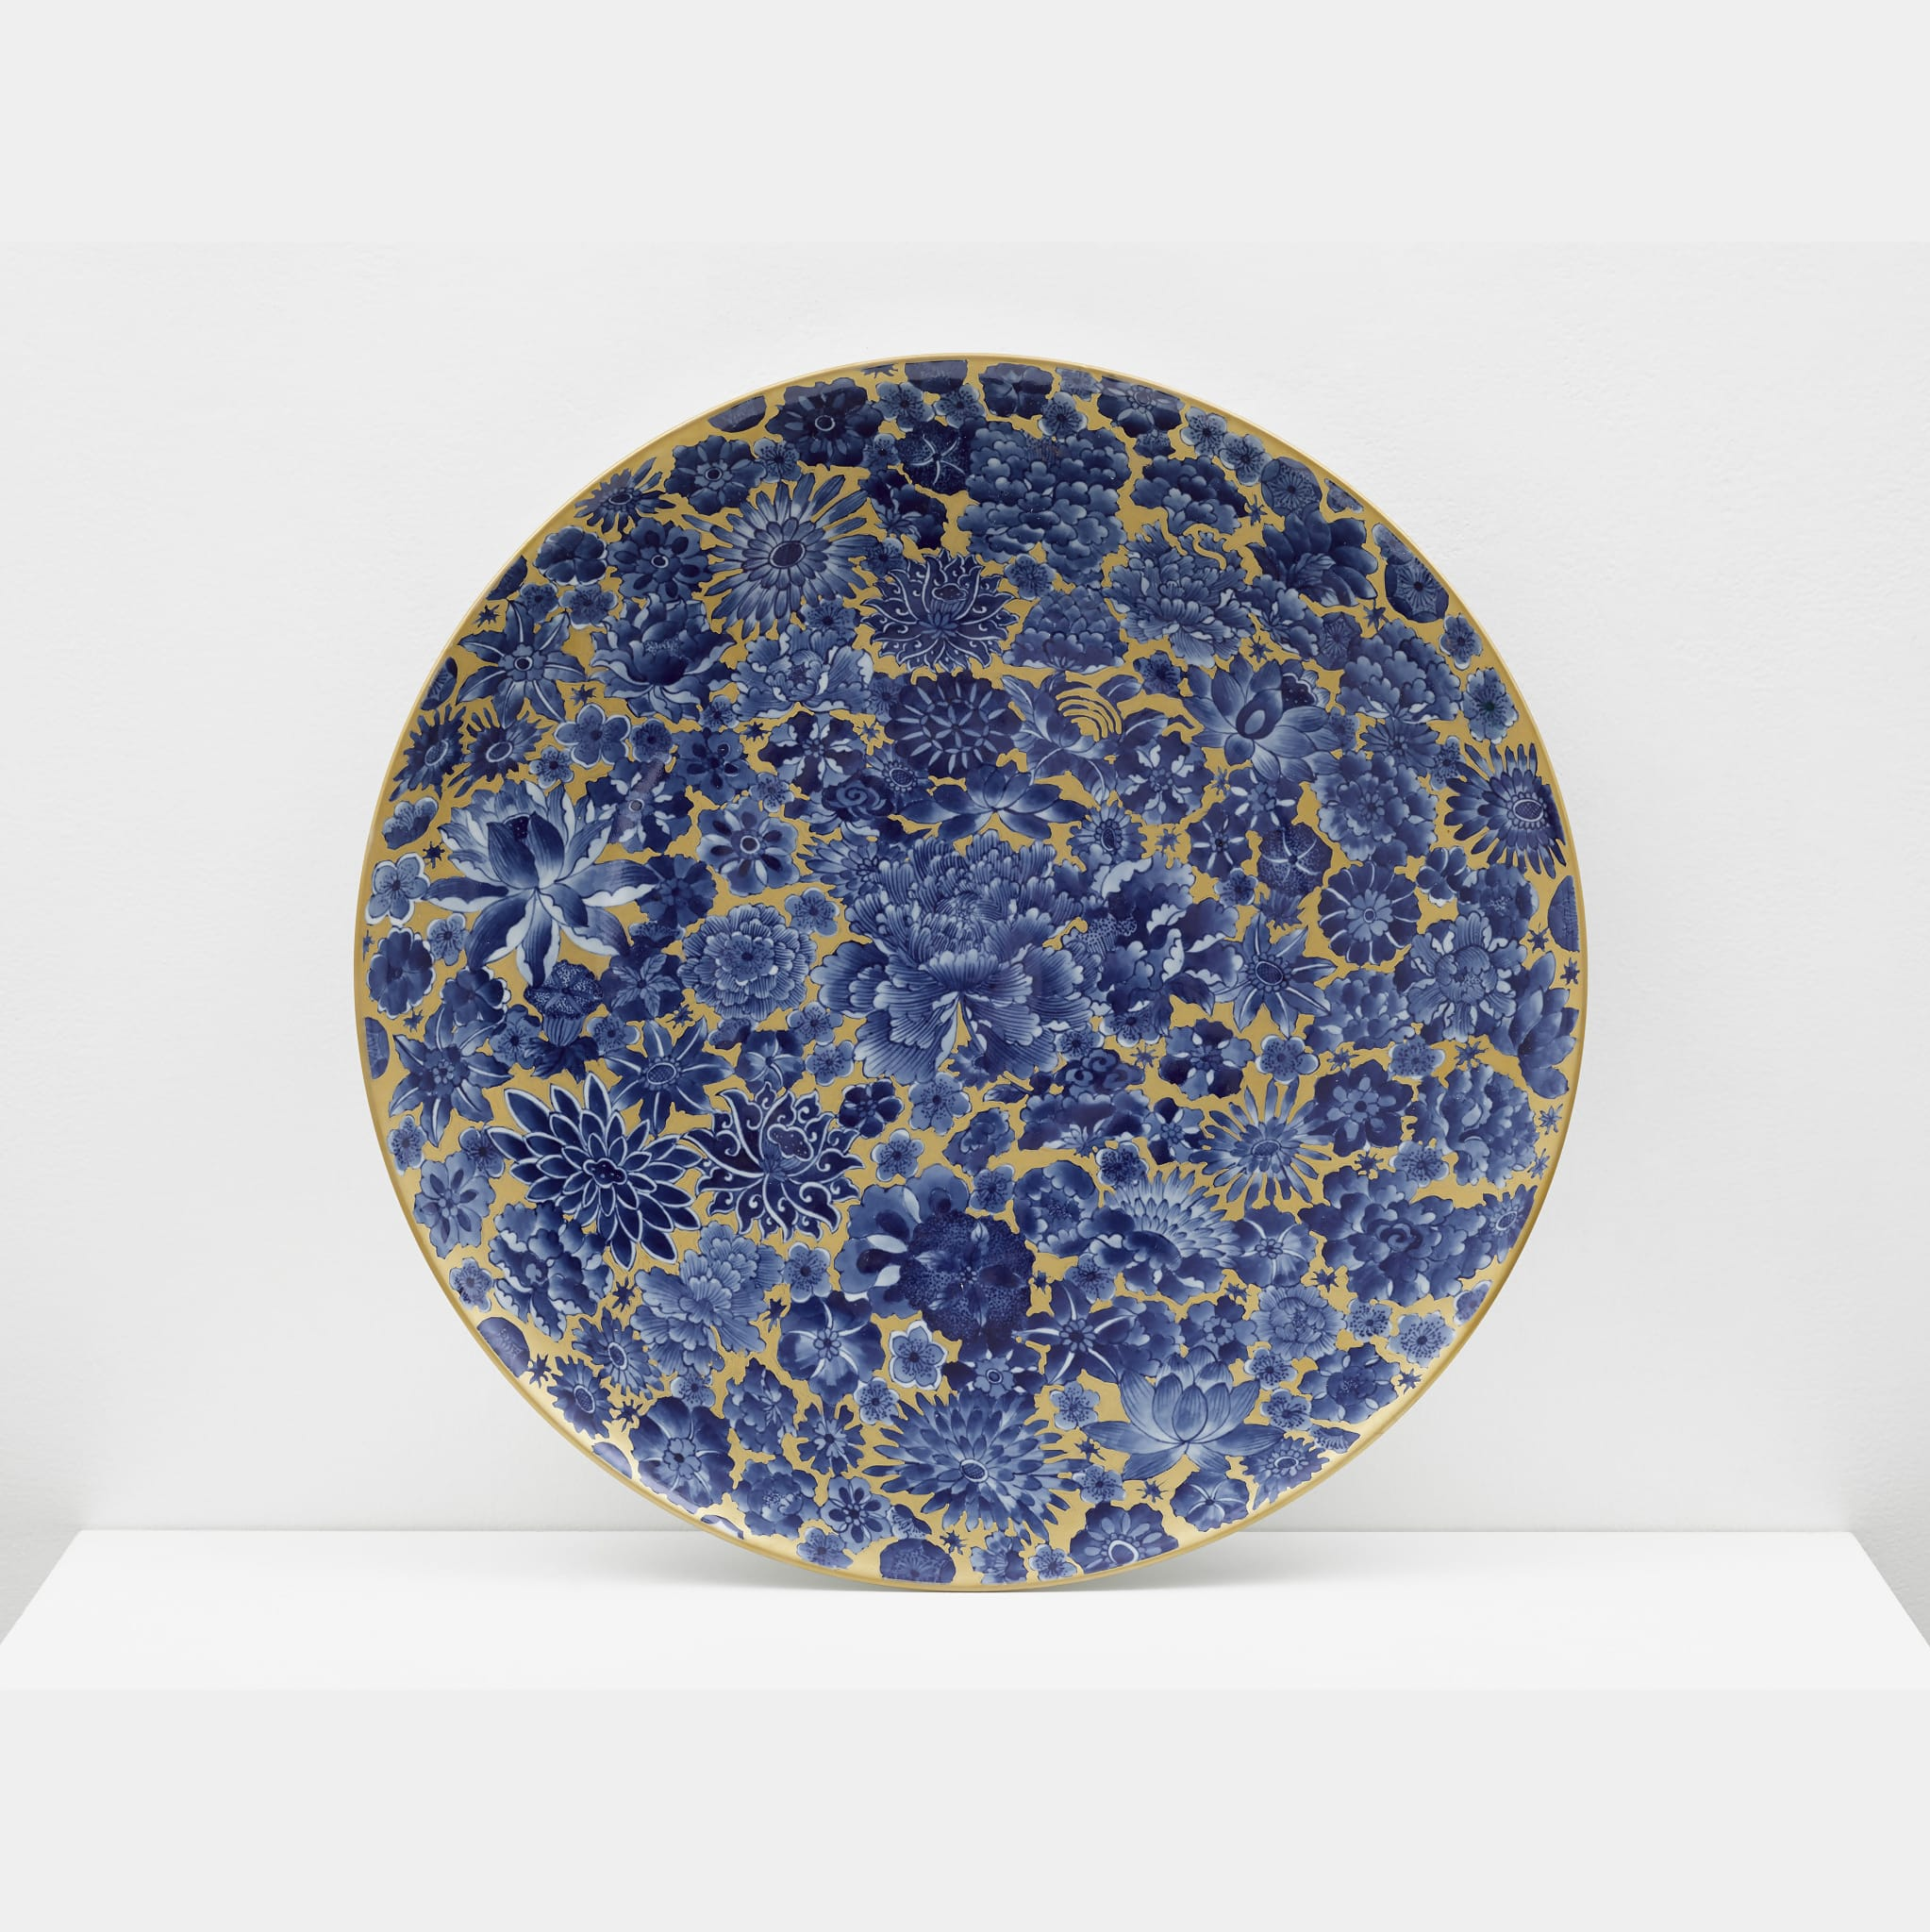 Plate with Flowers by Ai Weiwei